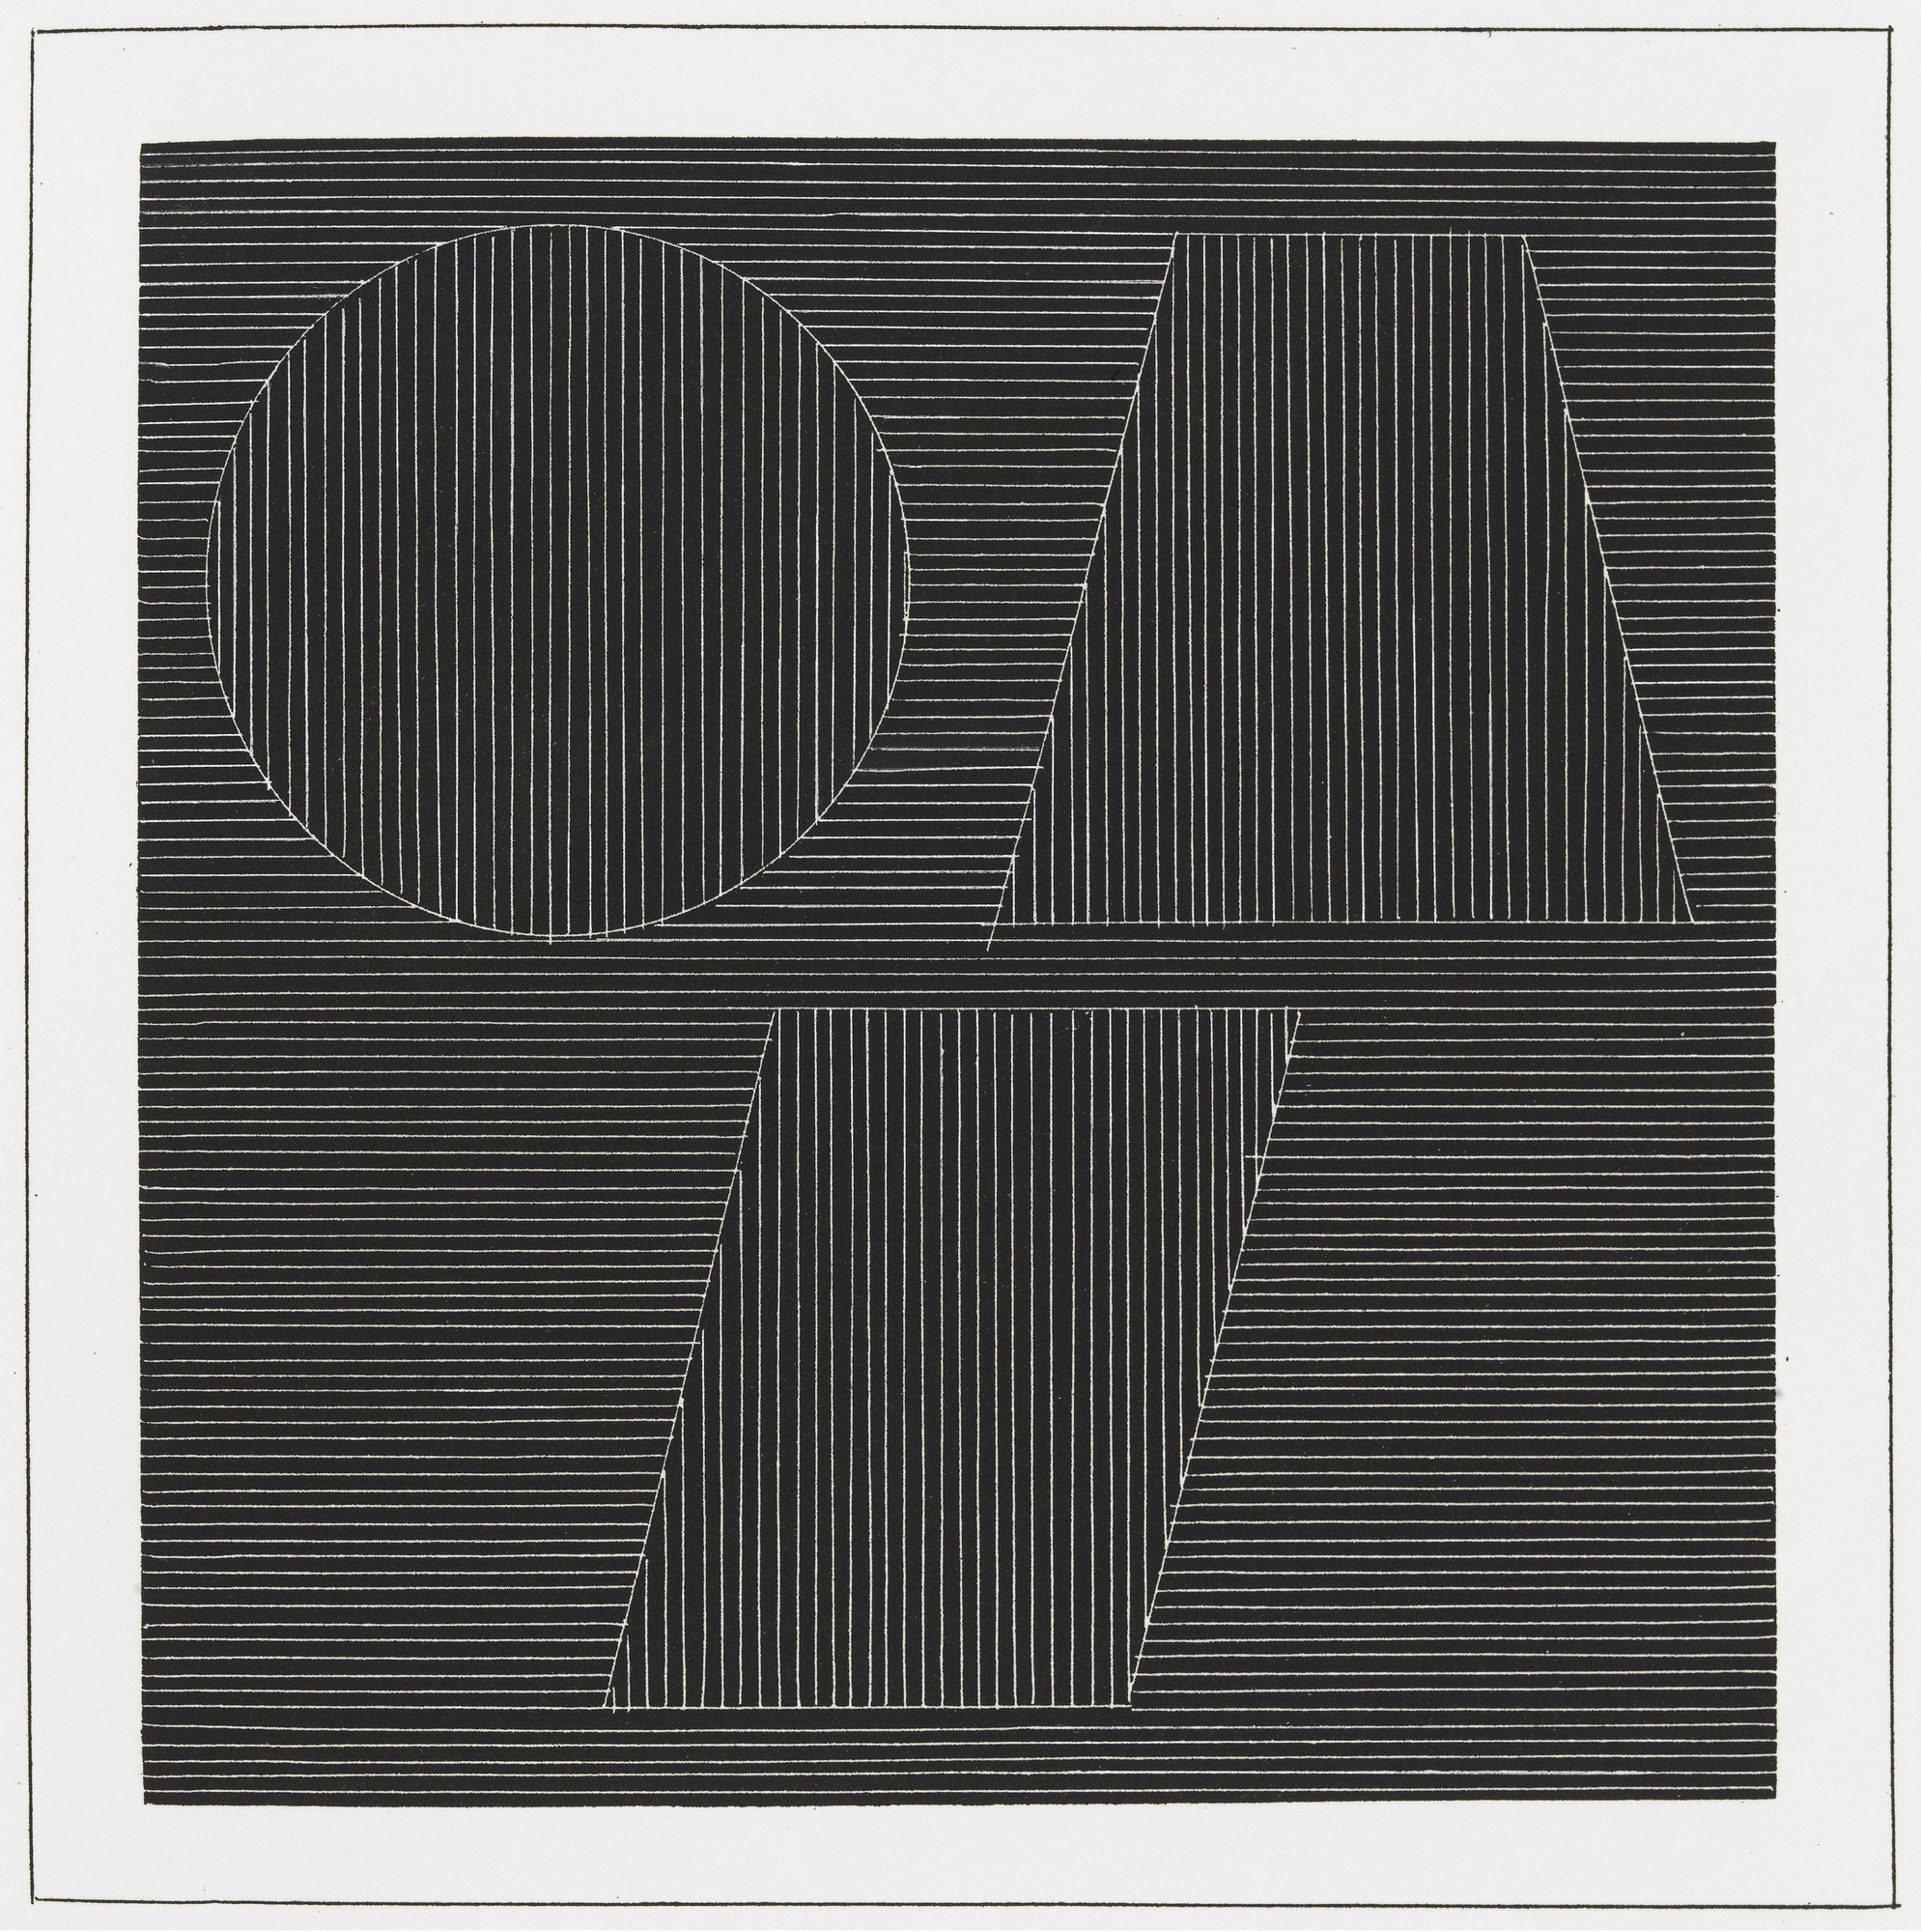 Sol LeWitt. Plate (folio 38) from Six Geometric Figures and All Their Combinations, Volume I. 1980